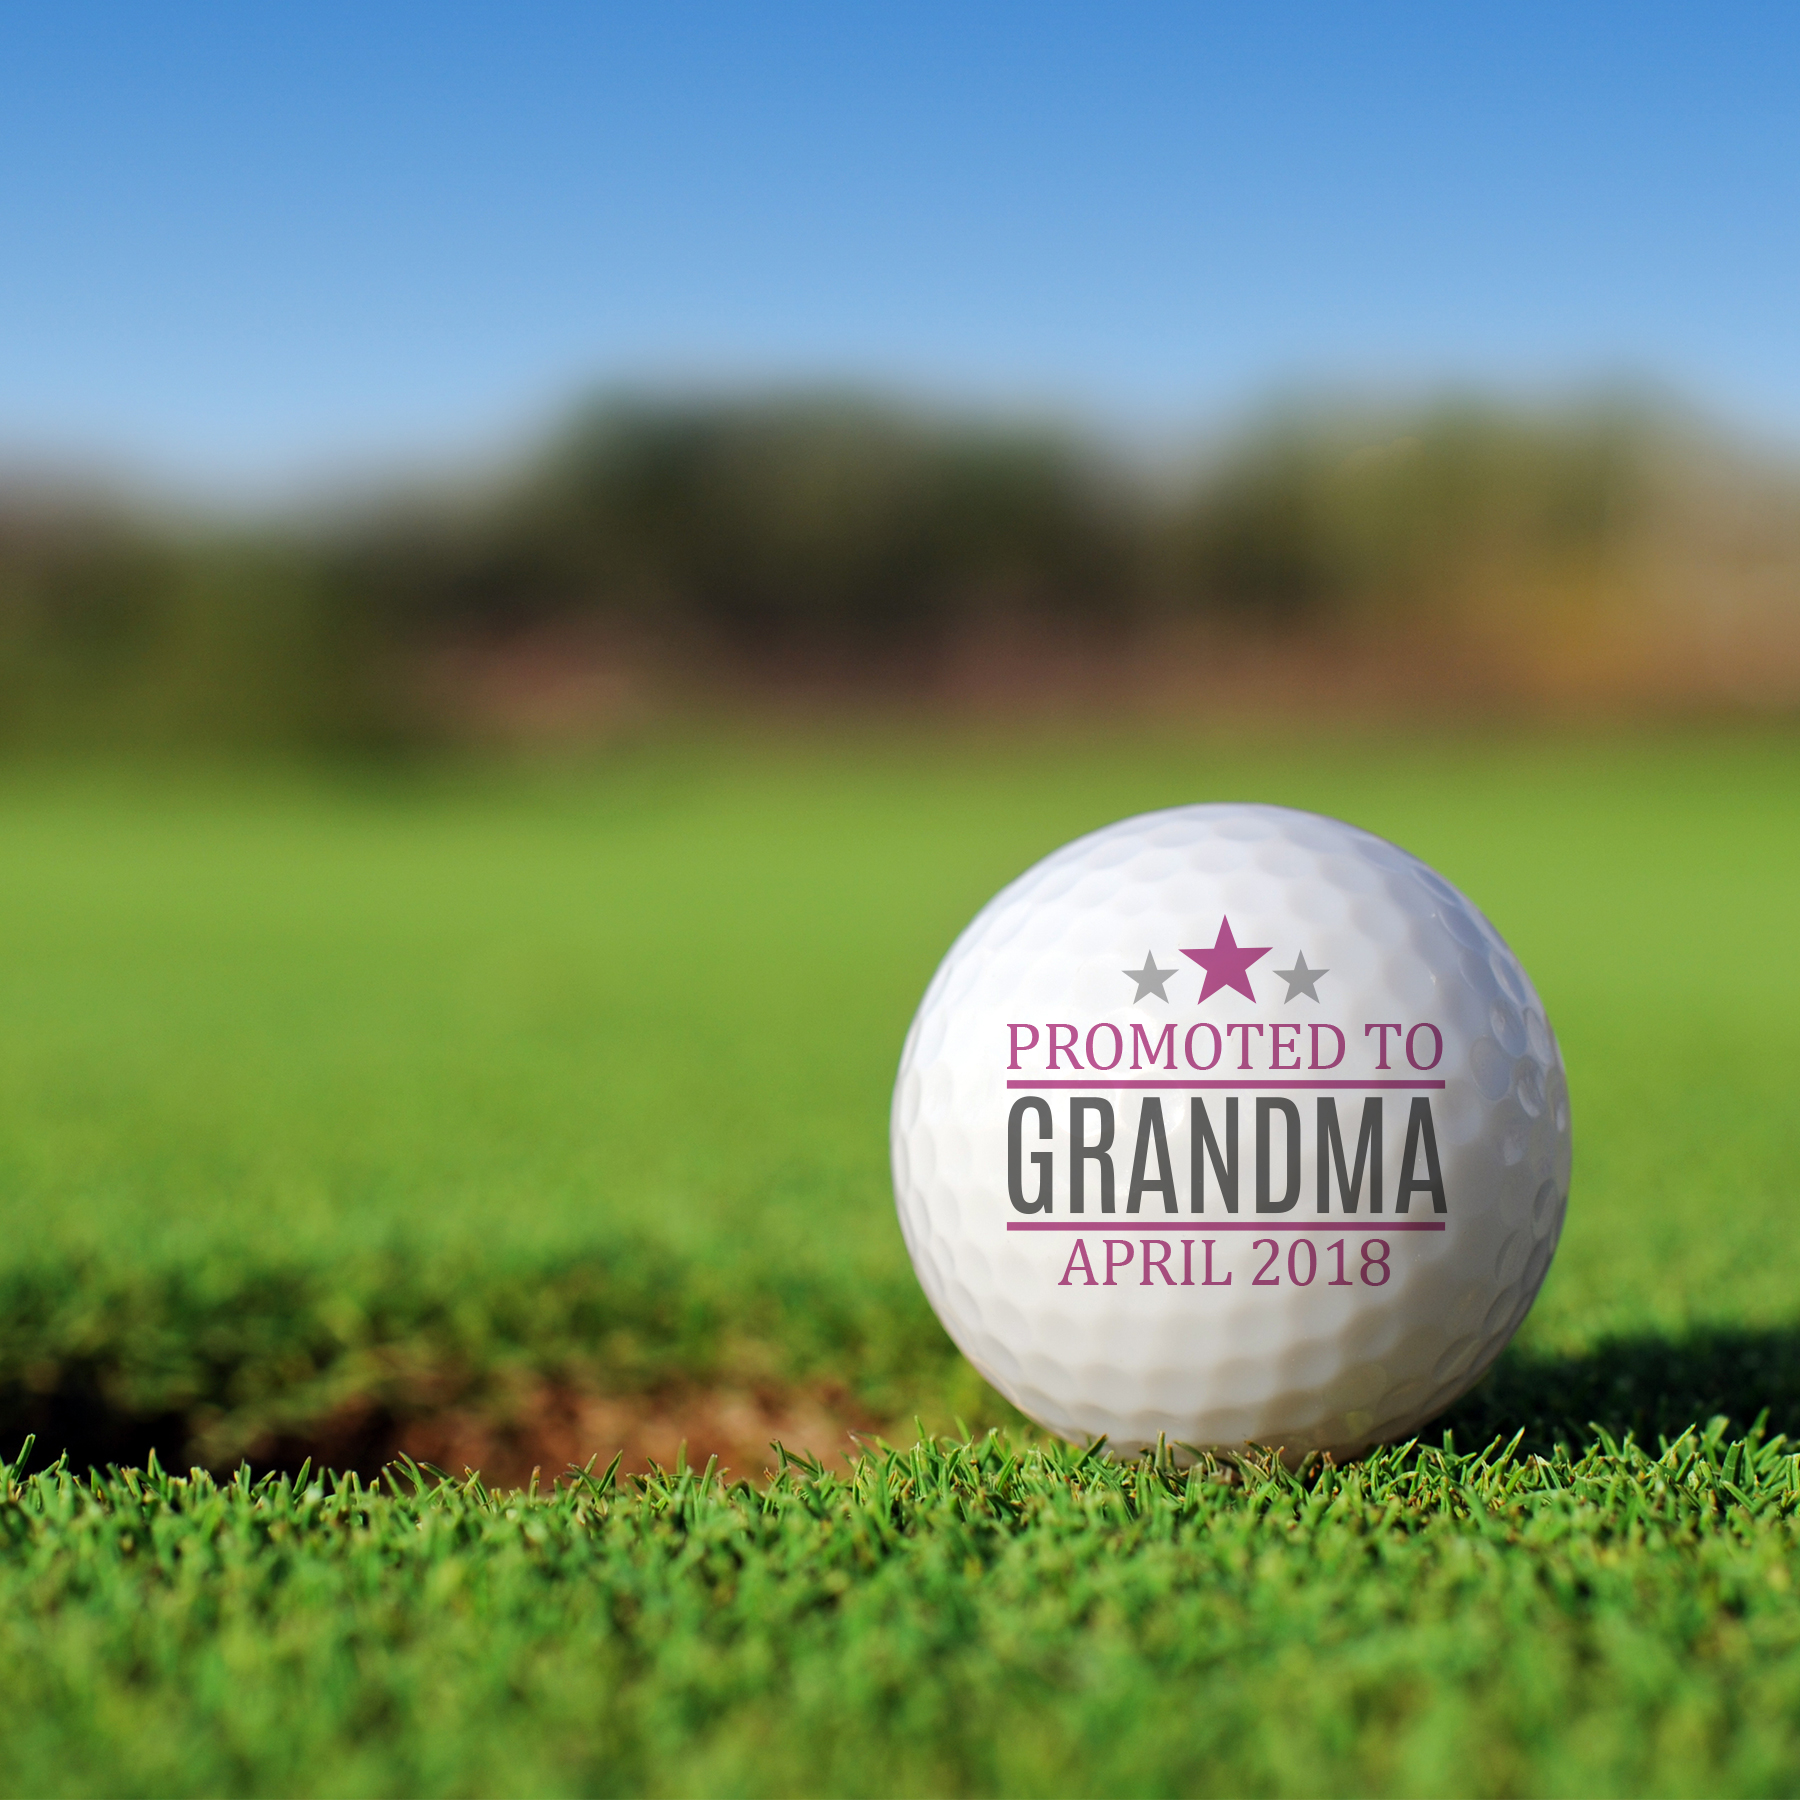 Personalized Promoted to Grandpa Golf Ball Set Golfballs | Personalized Golf Balls